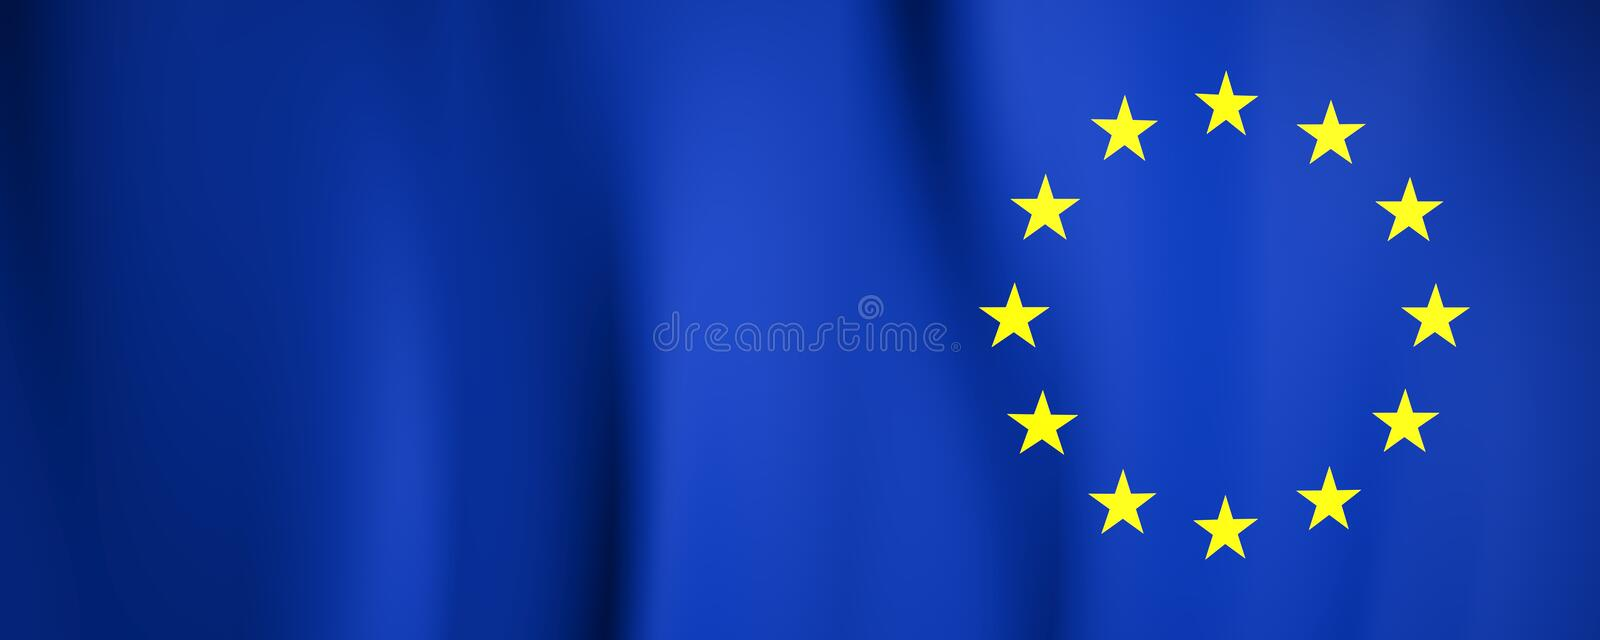 European Flag. Yellow stars on a blue. Council of Europe. 3d illustration royalty free illustration